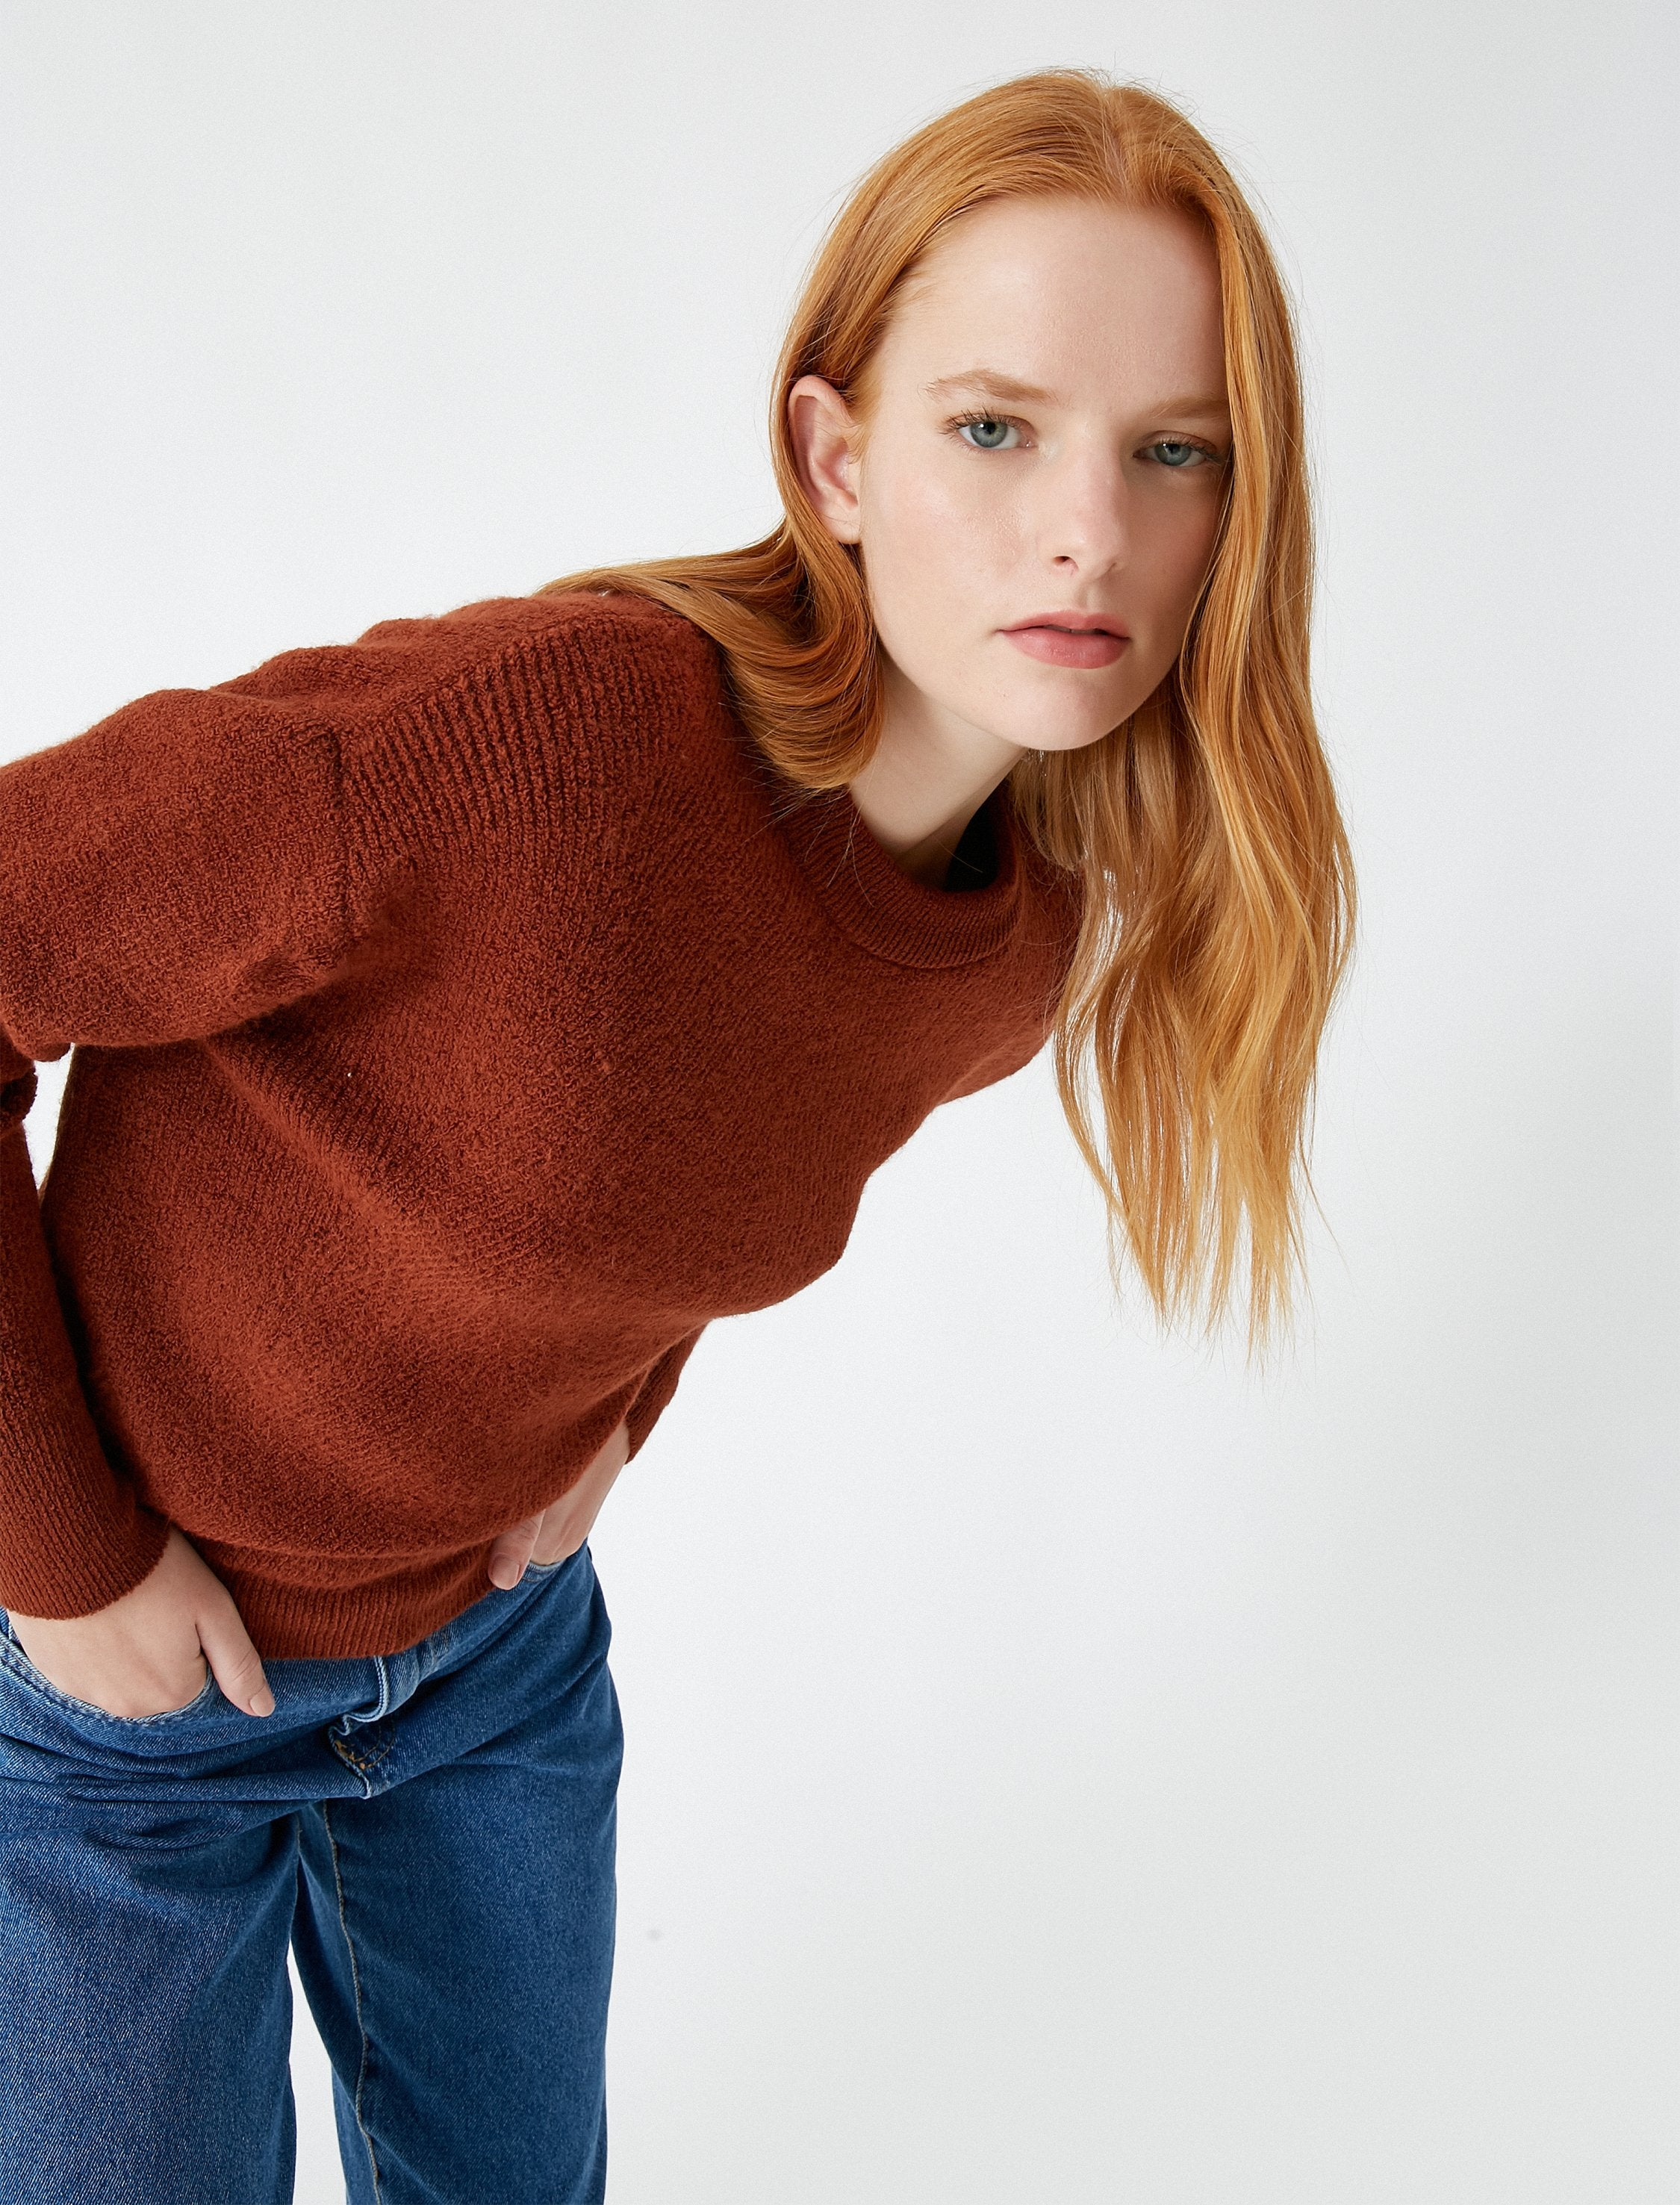 Relaxed Crew Neck Sweater in Mocha